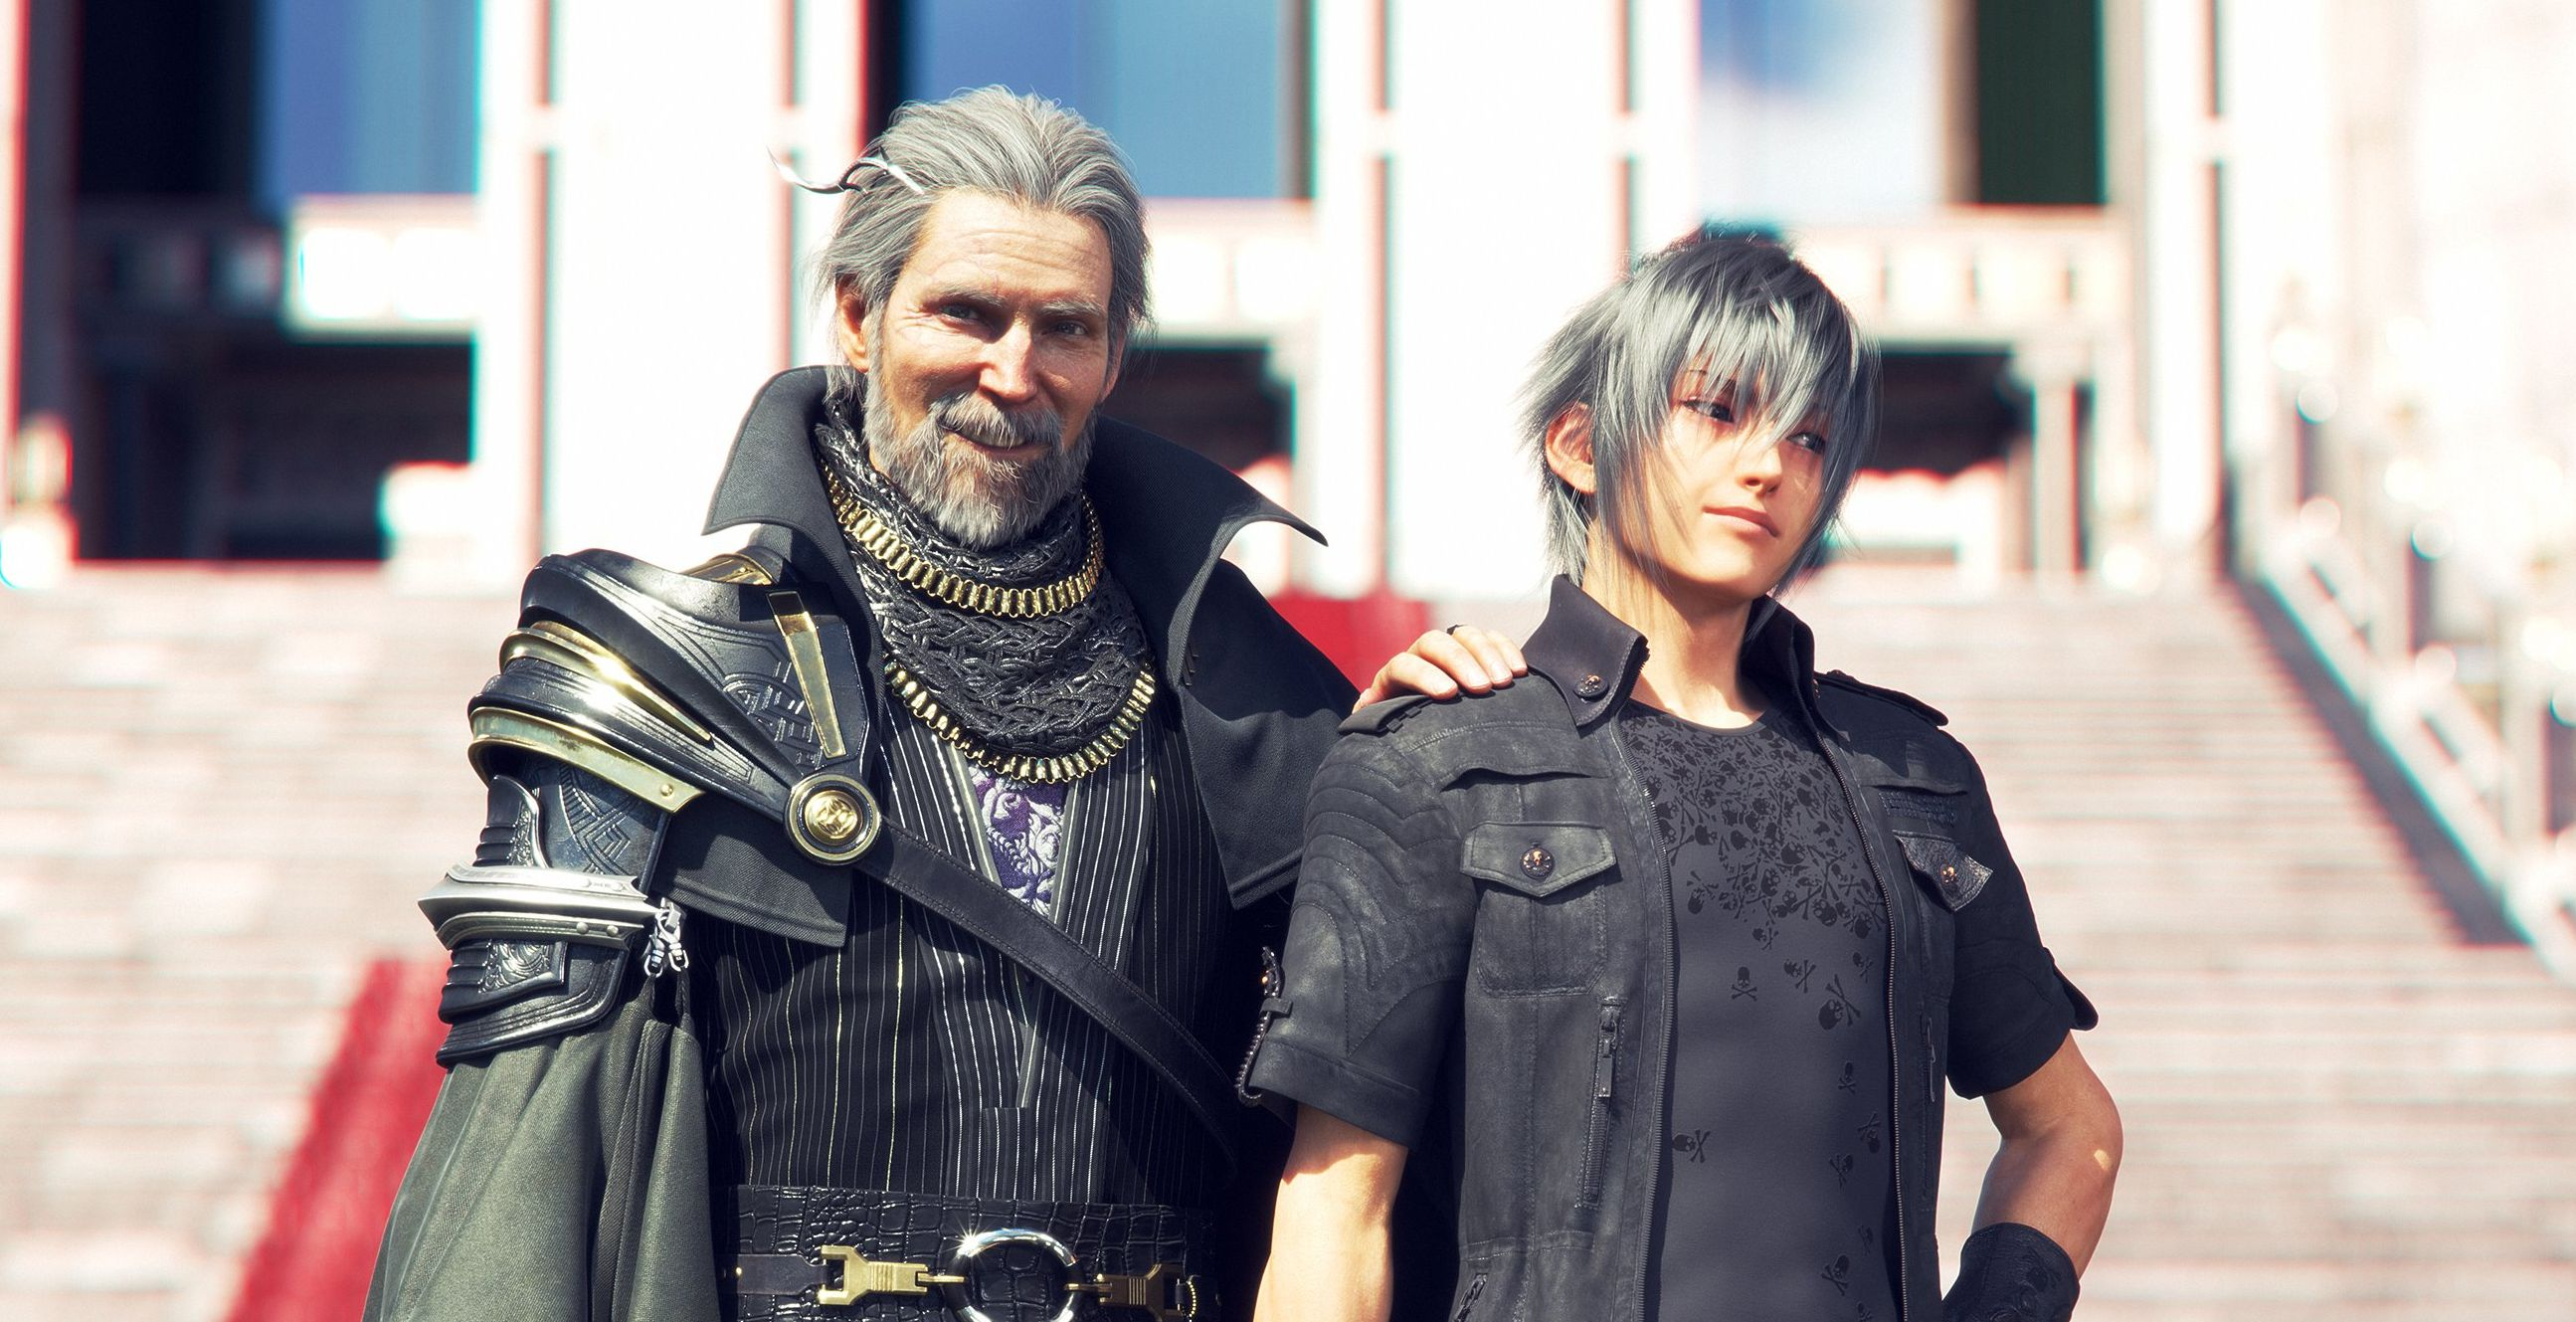 Square Enix keeps pumping out Final Fantasy XV content and will continue to into 2018 screenshot